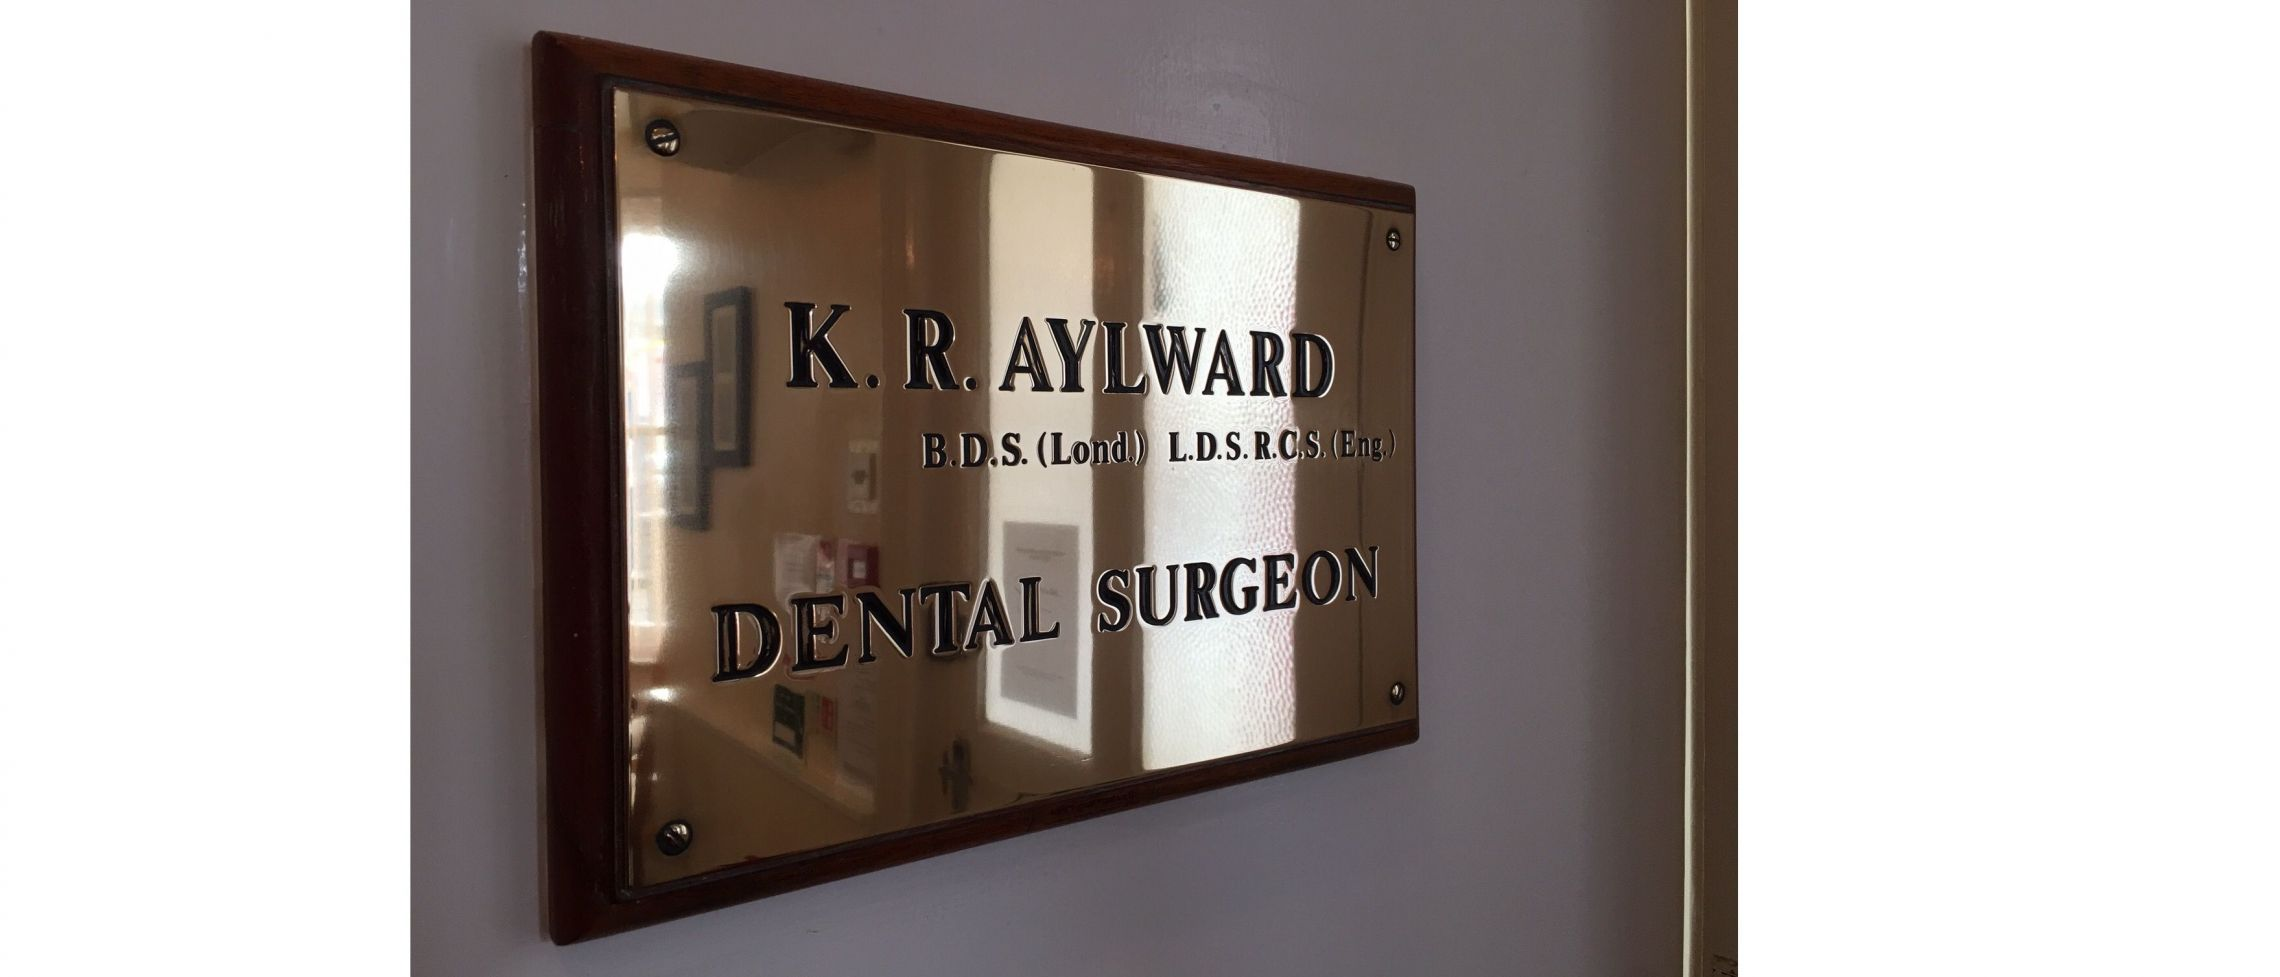 Sedgemead House Dental Practice and Medical Facial Aesthetics Clinic